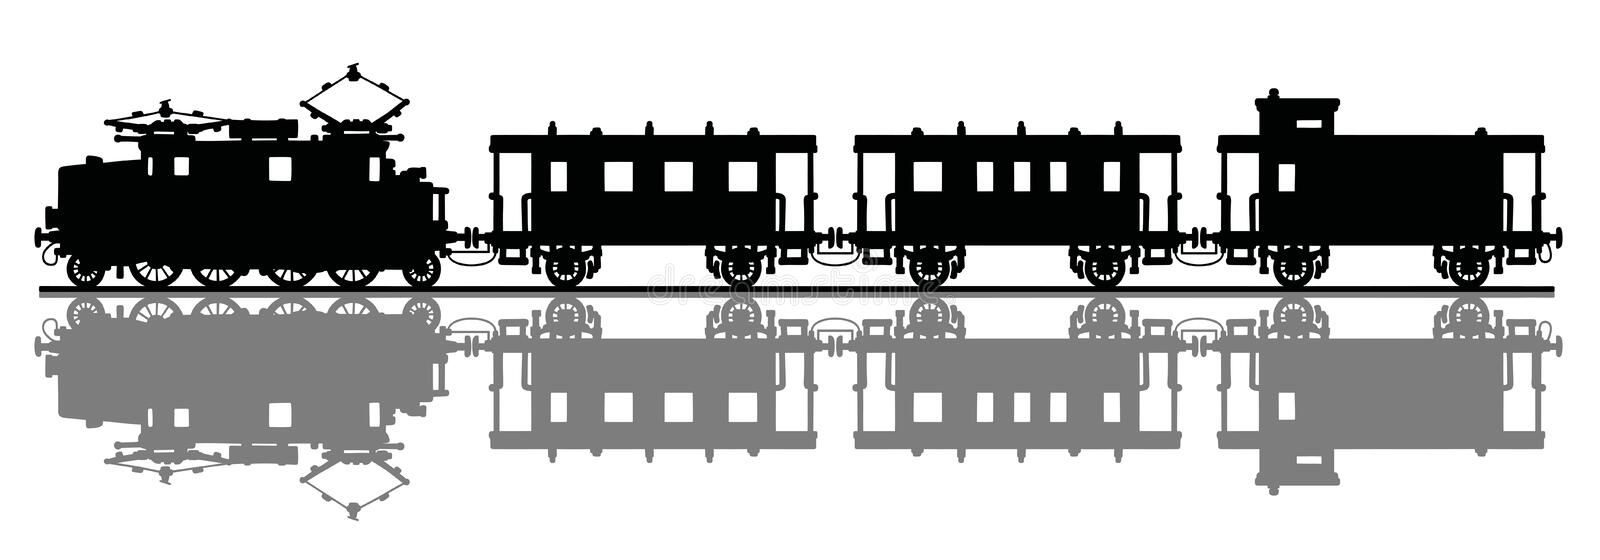 Old electric train stock illustration